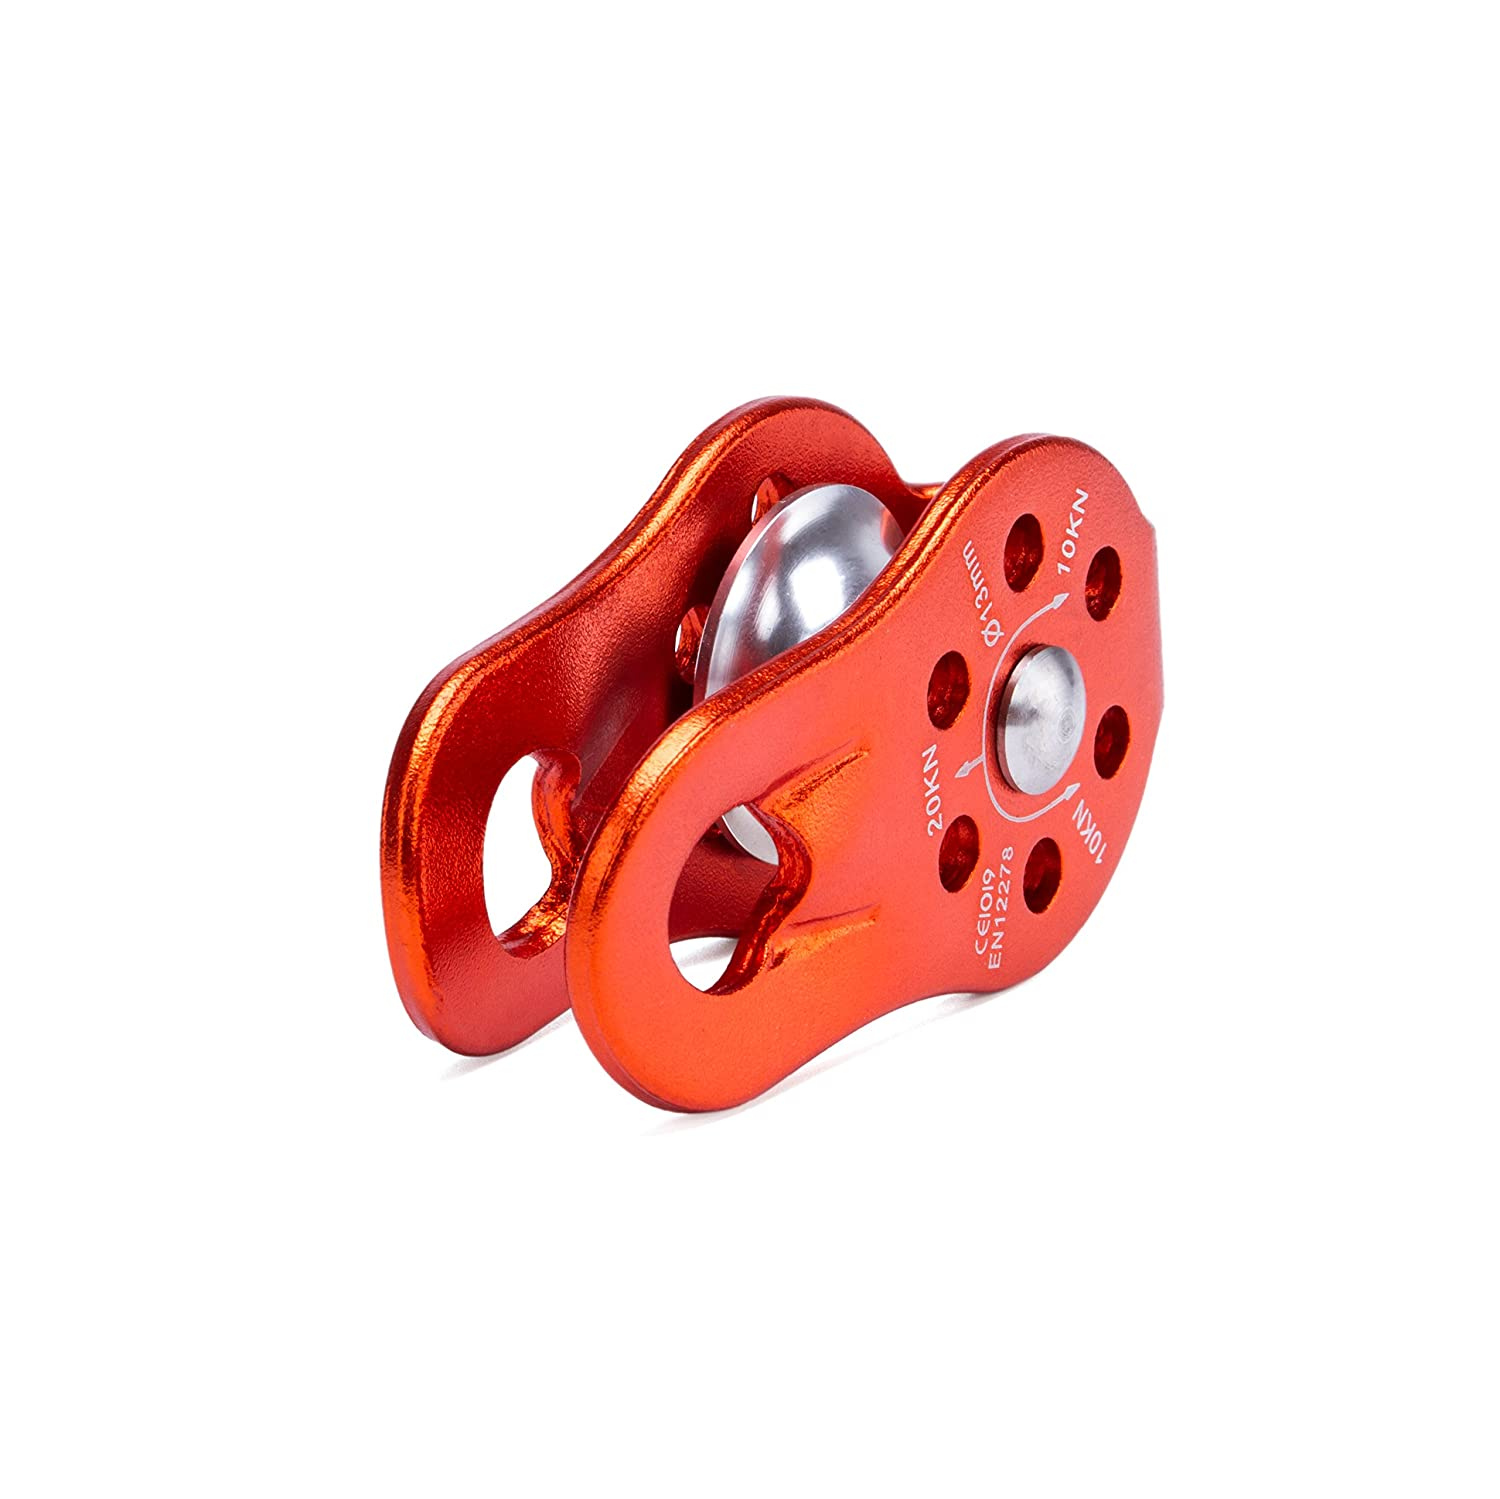 Aloft Work kissloves 20KN Aluminum Climbing Pulley Double Pulley with Swing Plates for Rescue Rope Climbing Setting A Tackle and Block in Your House Single Pulley - Red